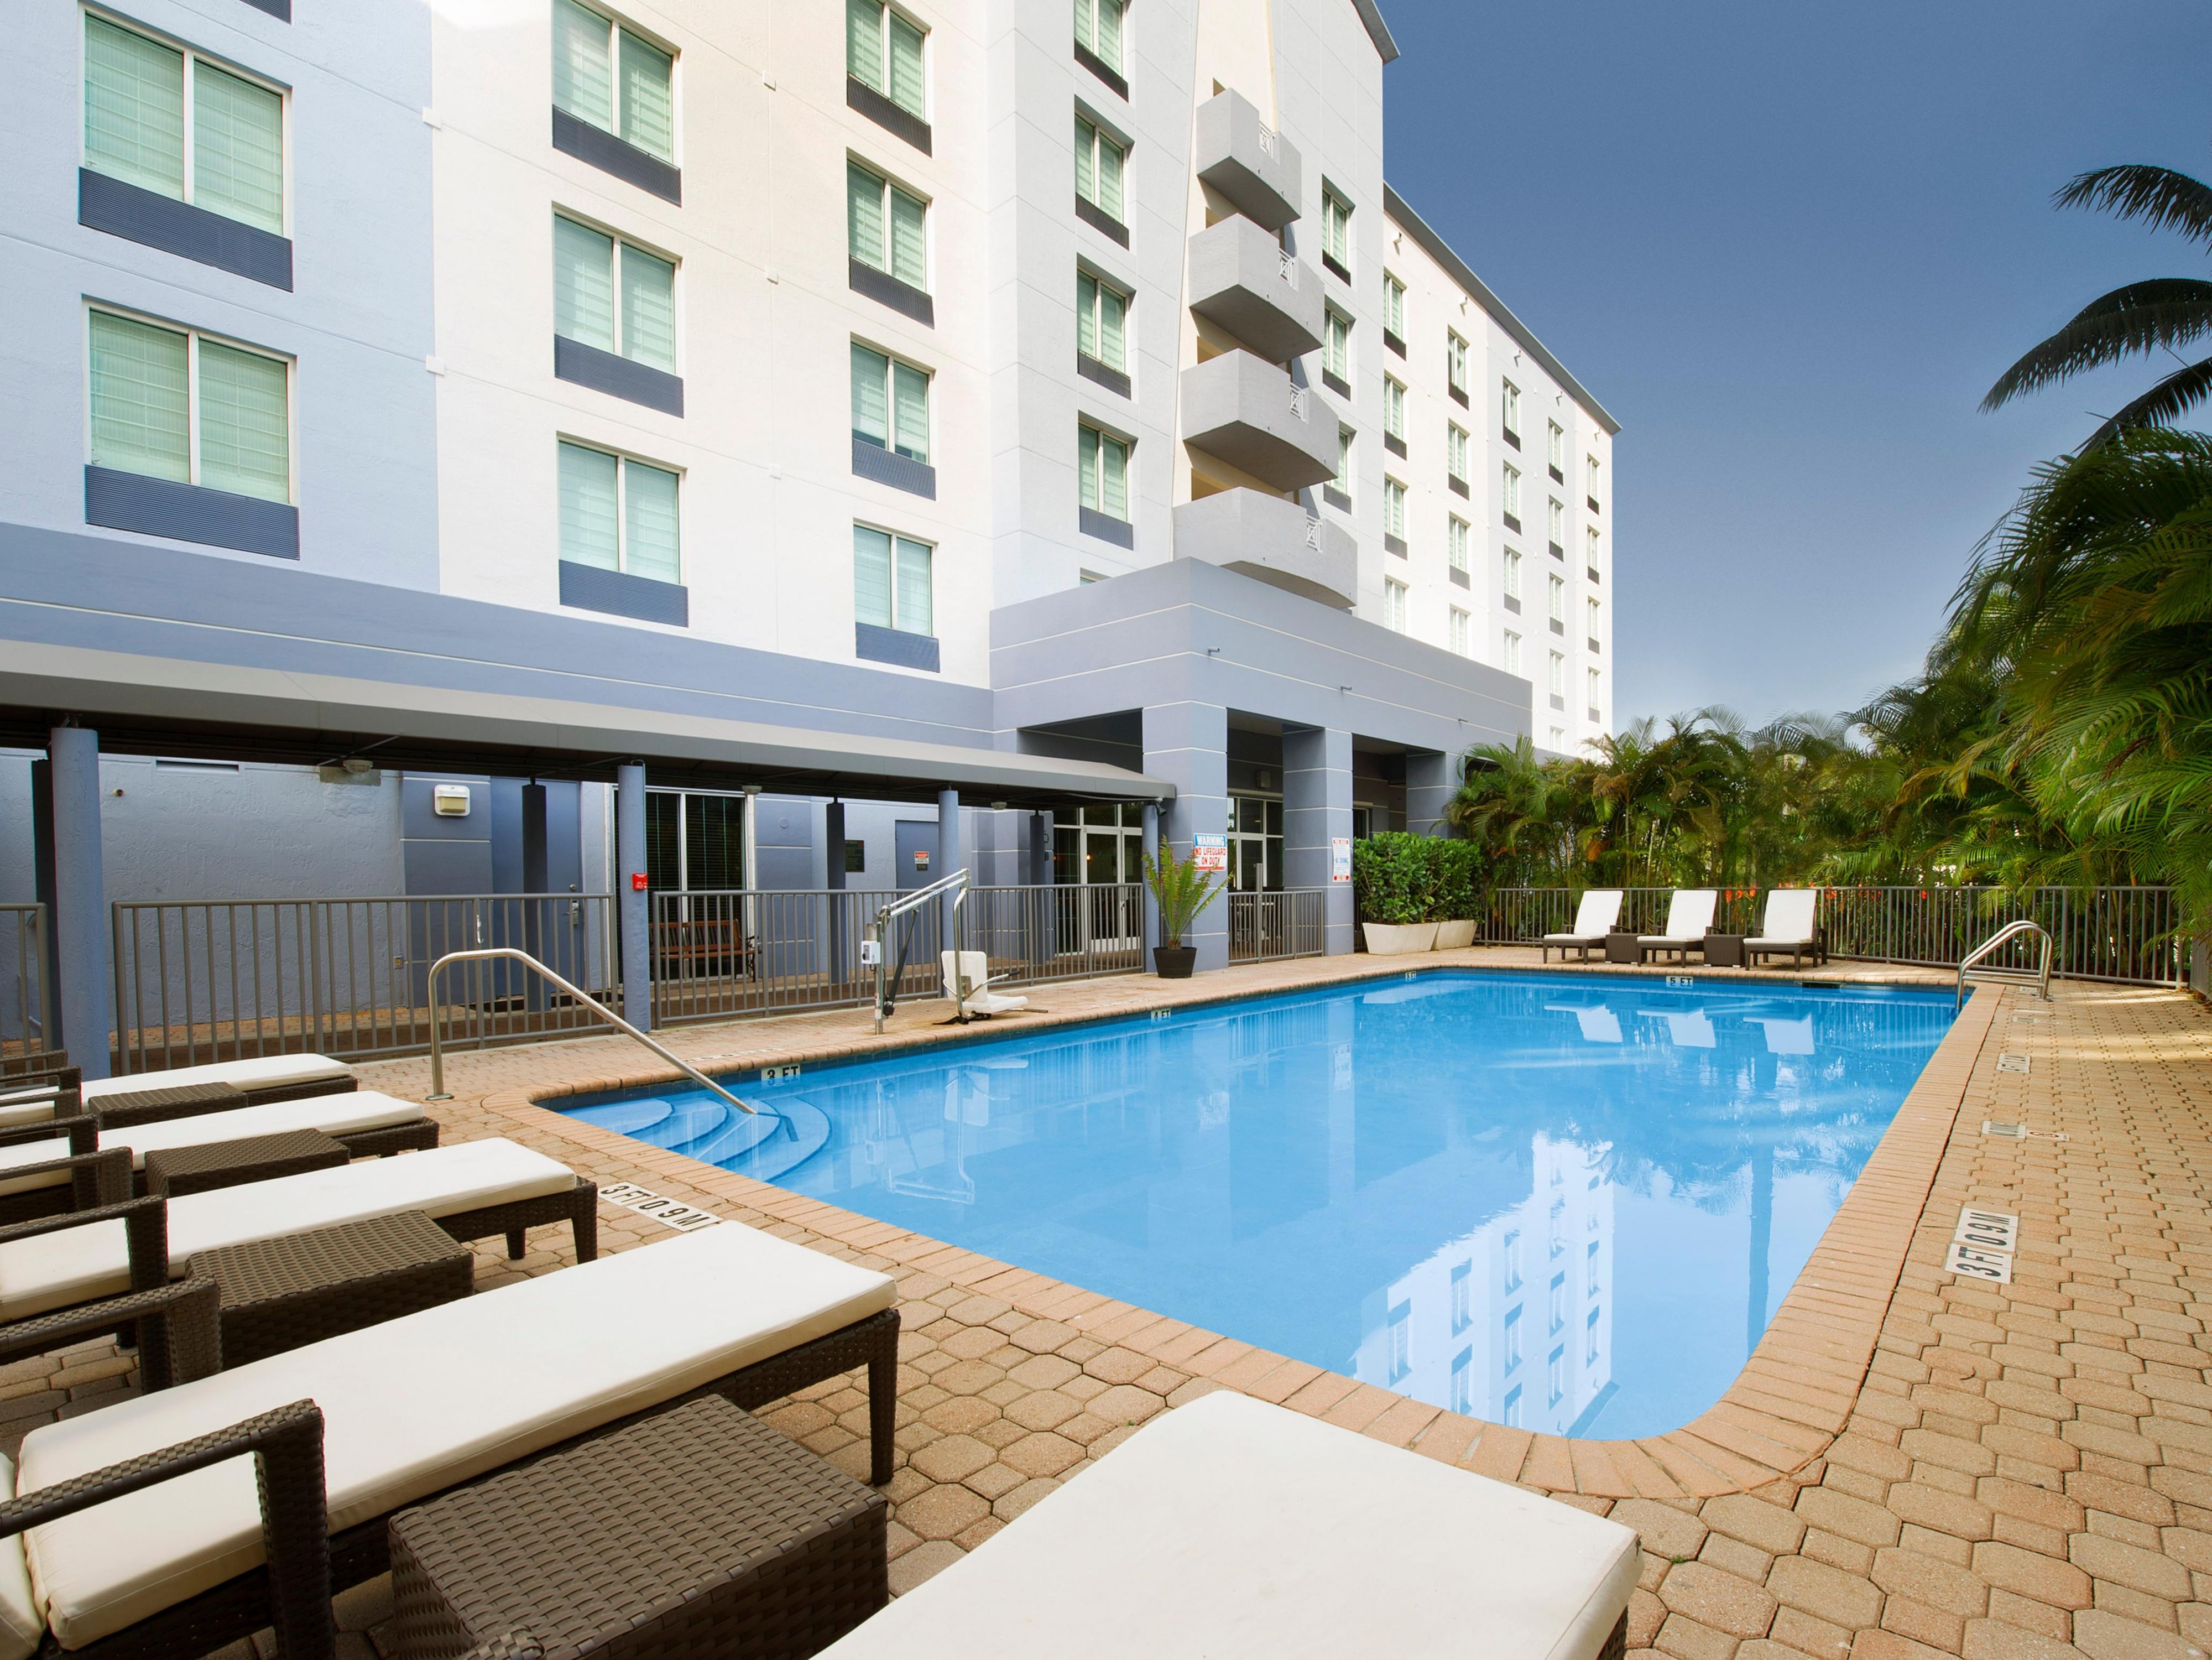 Holiday Inn Miami Doral Swimming Pool great for exercise